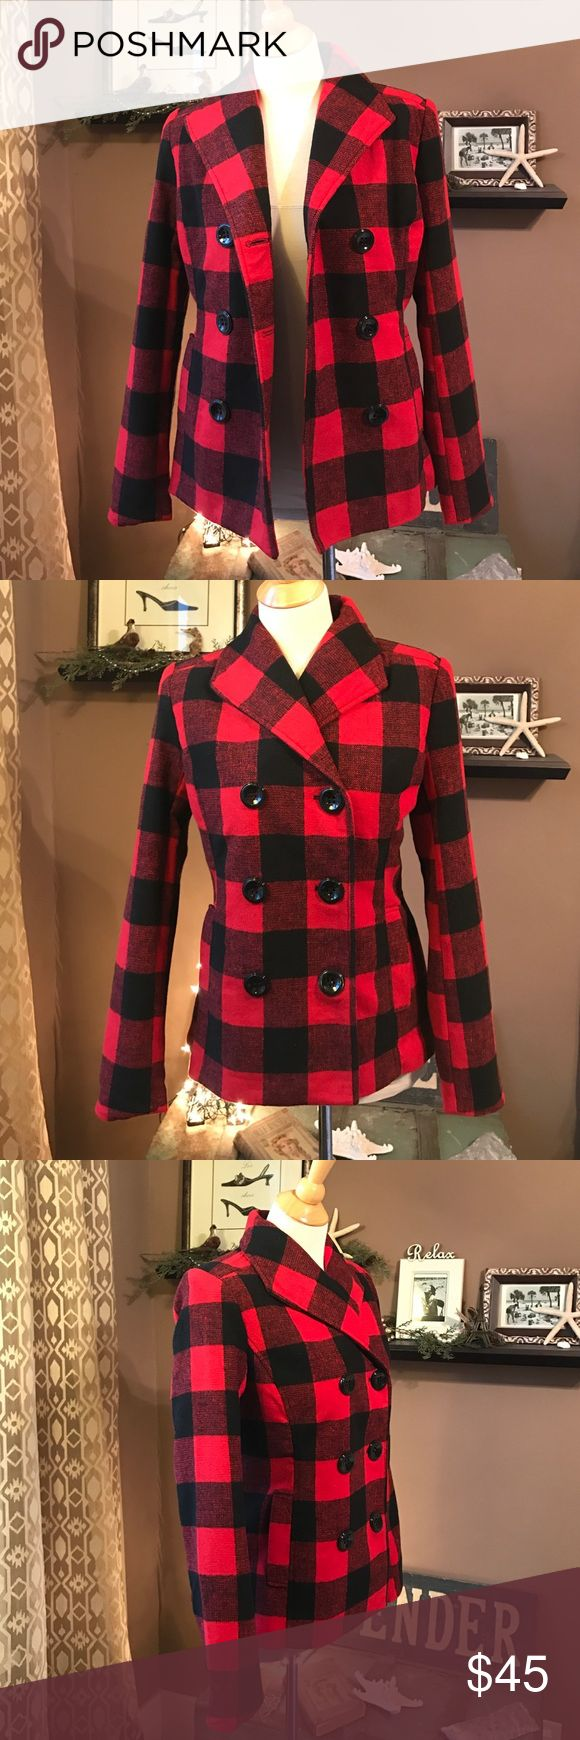 New Rampage Red Buffalo Plaid Peacoat M Brand new without tags and never worn, from this year. I got it for Christmas, but I already have another one that's almost the same exact style, so I'm passing it on. Very soft material, 100% polyester, fully lined in black nylon fabric, double breasted pea coat style, side slit pockets, button belt detail on the back, bright cherry red and black buffalo plaid. By Rampage, size Medium. From a non-smoking pet-free home. Would be really cute with…